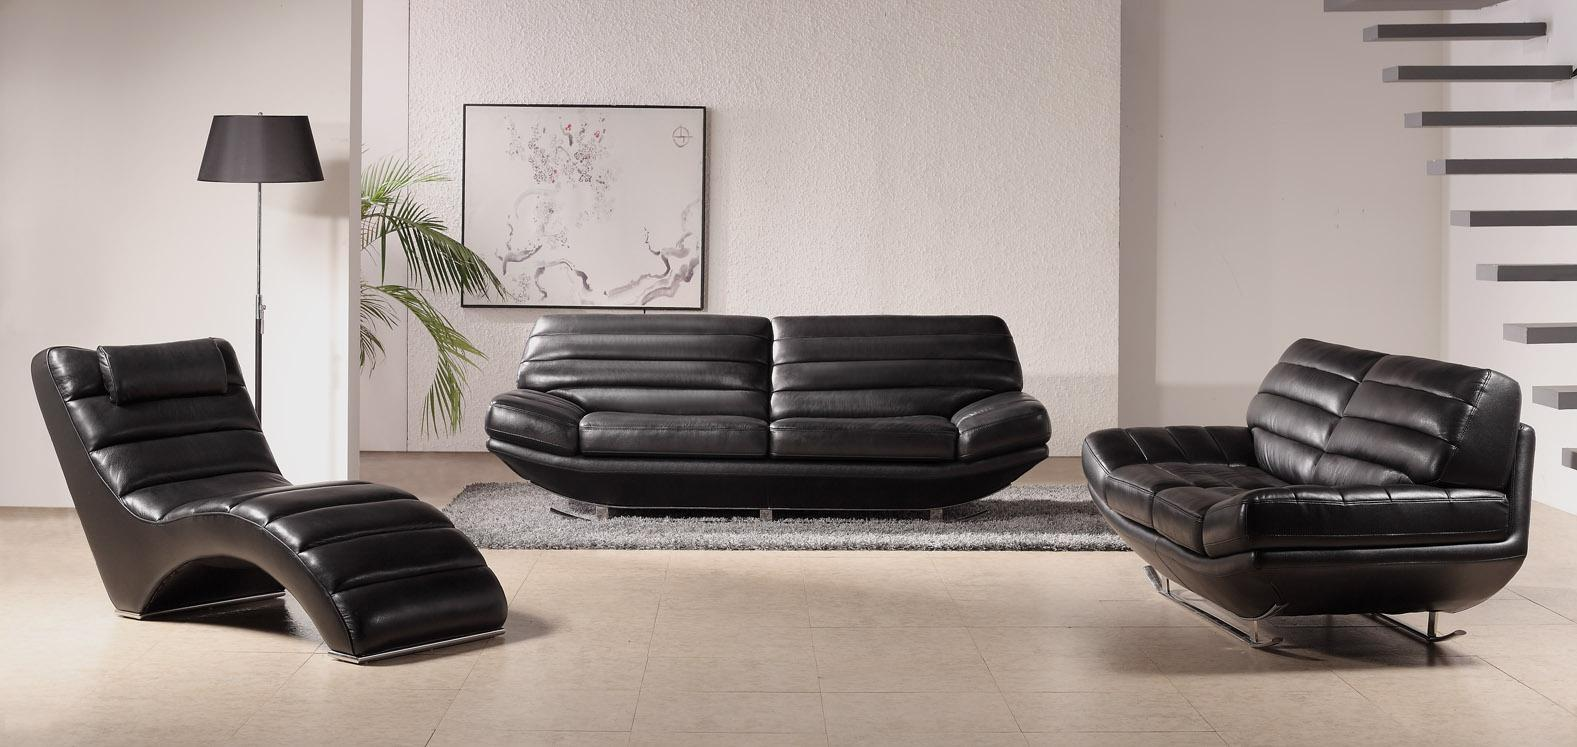 Know about types of couches and sofas my decorative for Living room with black leather furniture